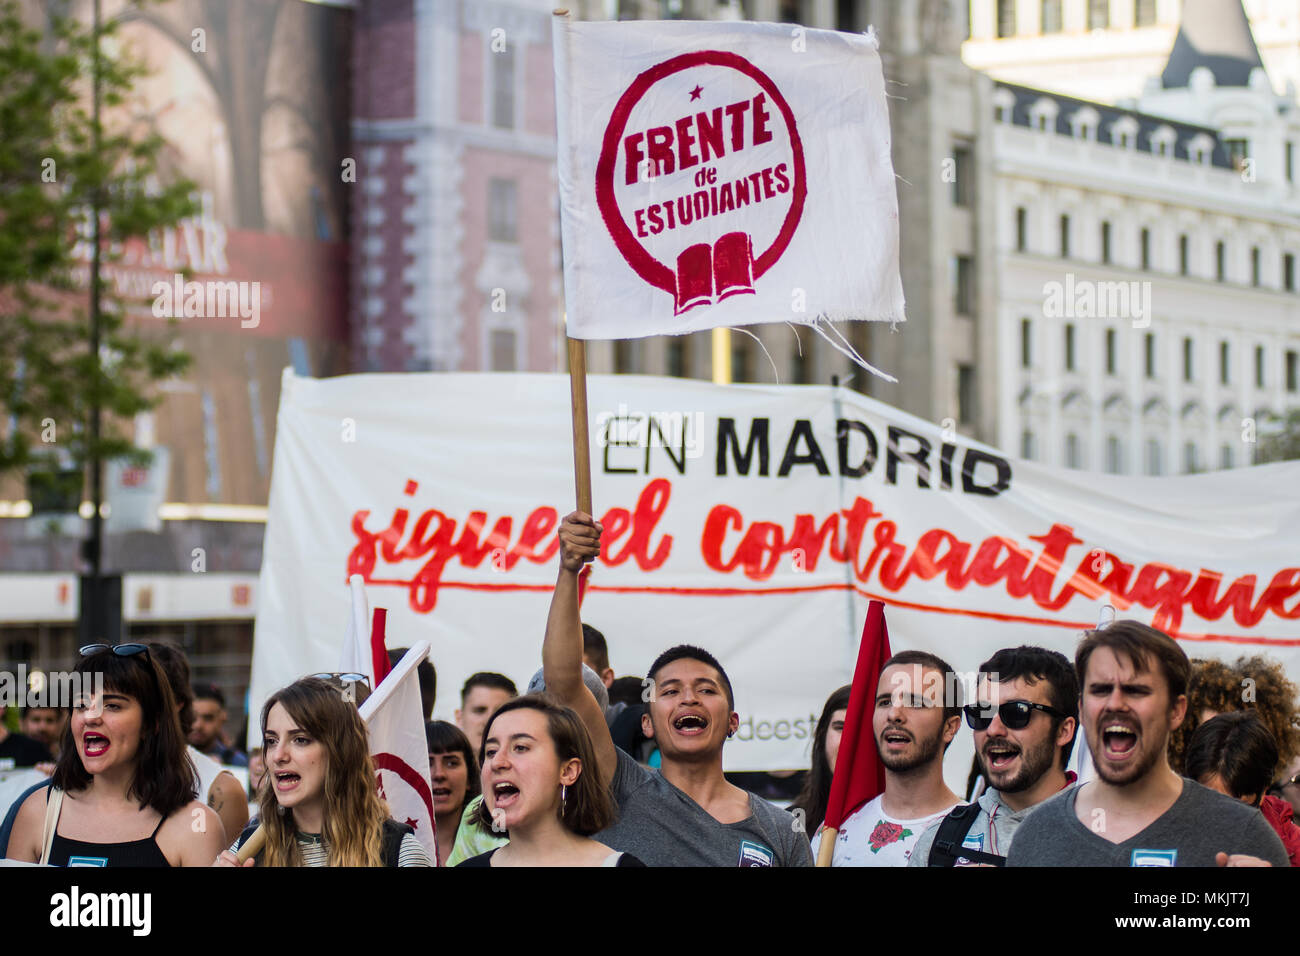 Madrid, Spain. 08th May, 2018. Students protesting during a demonstration against budget cuts in education and against education law (LOMCE), in Madrid, Spain. Credit: Marcos del Mazo/Alamy Live News - Stock Image